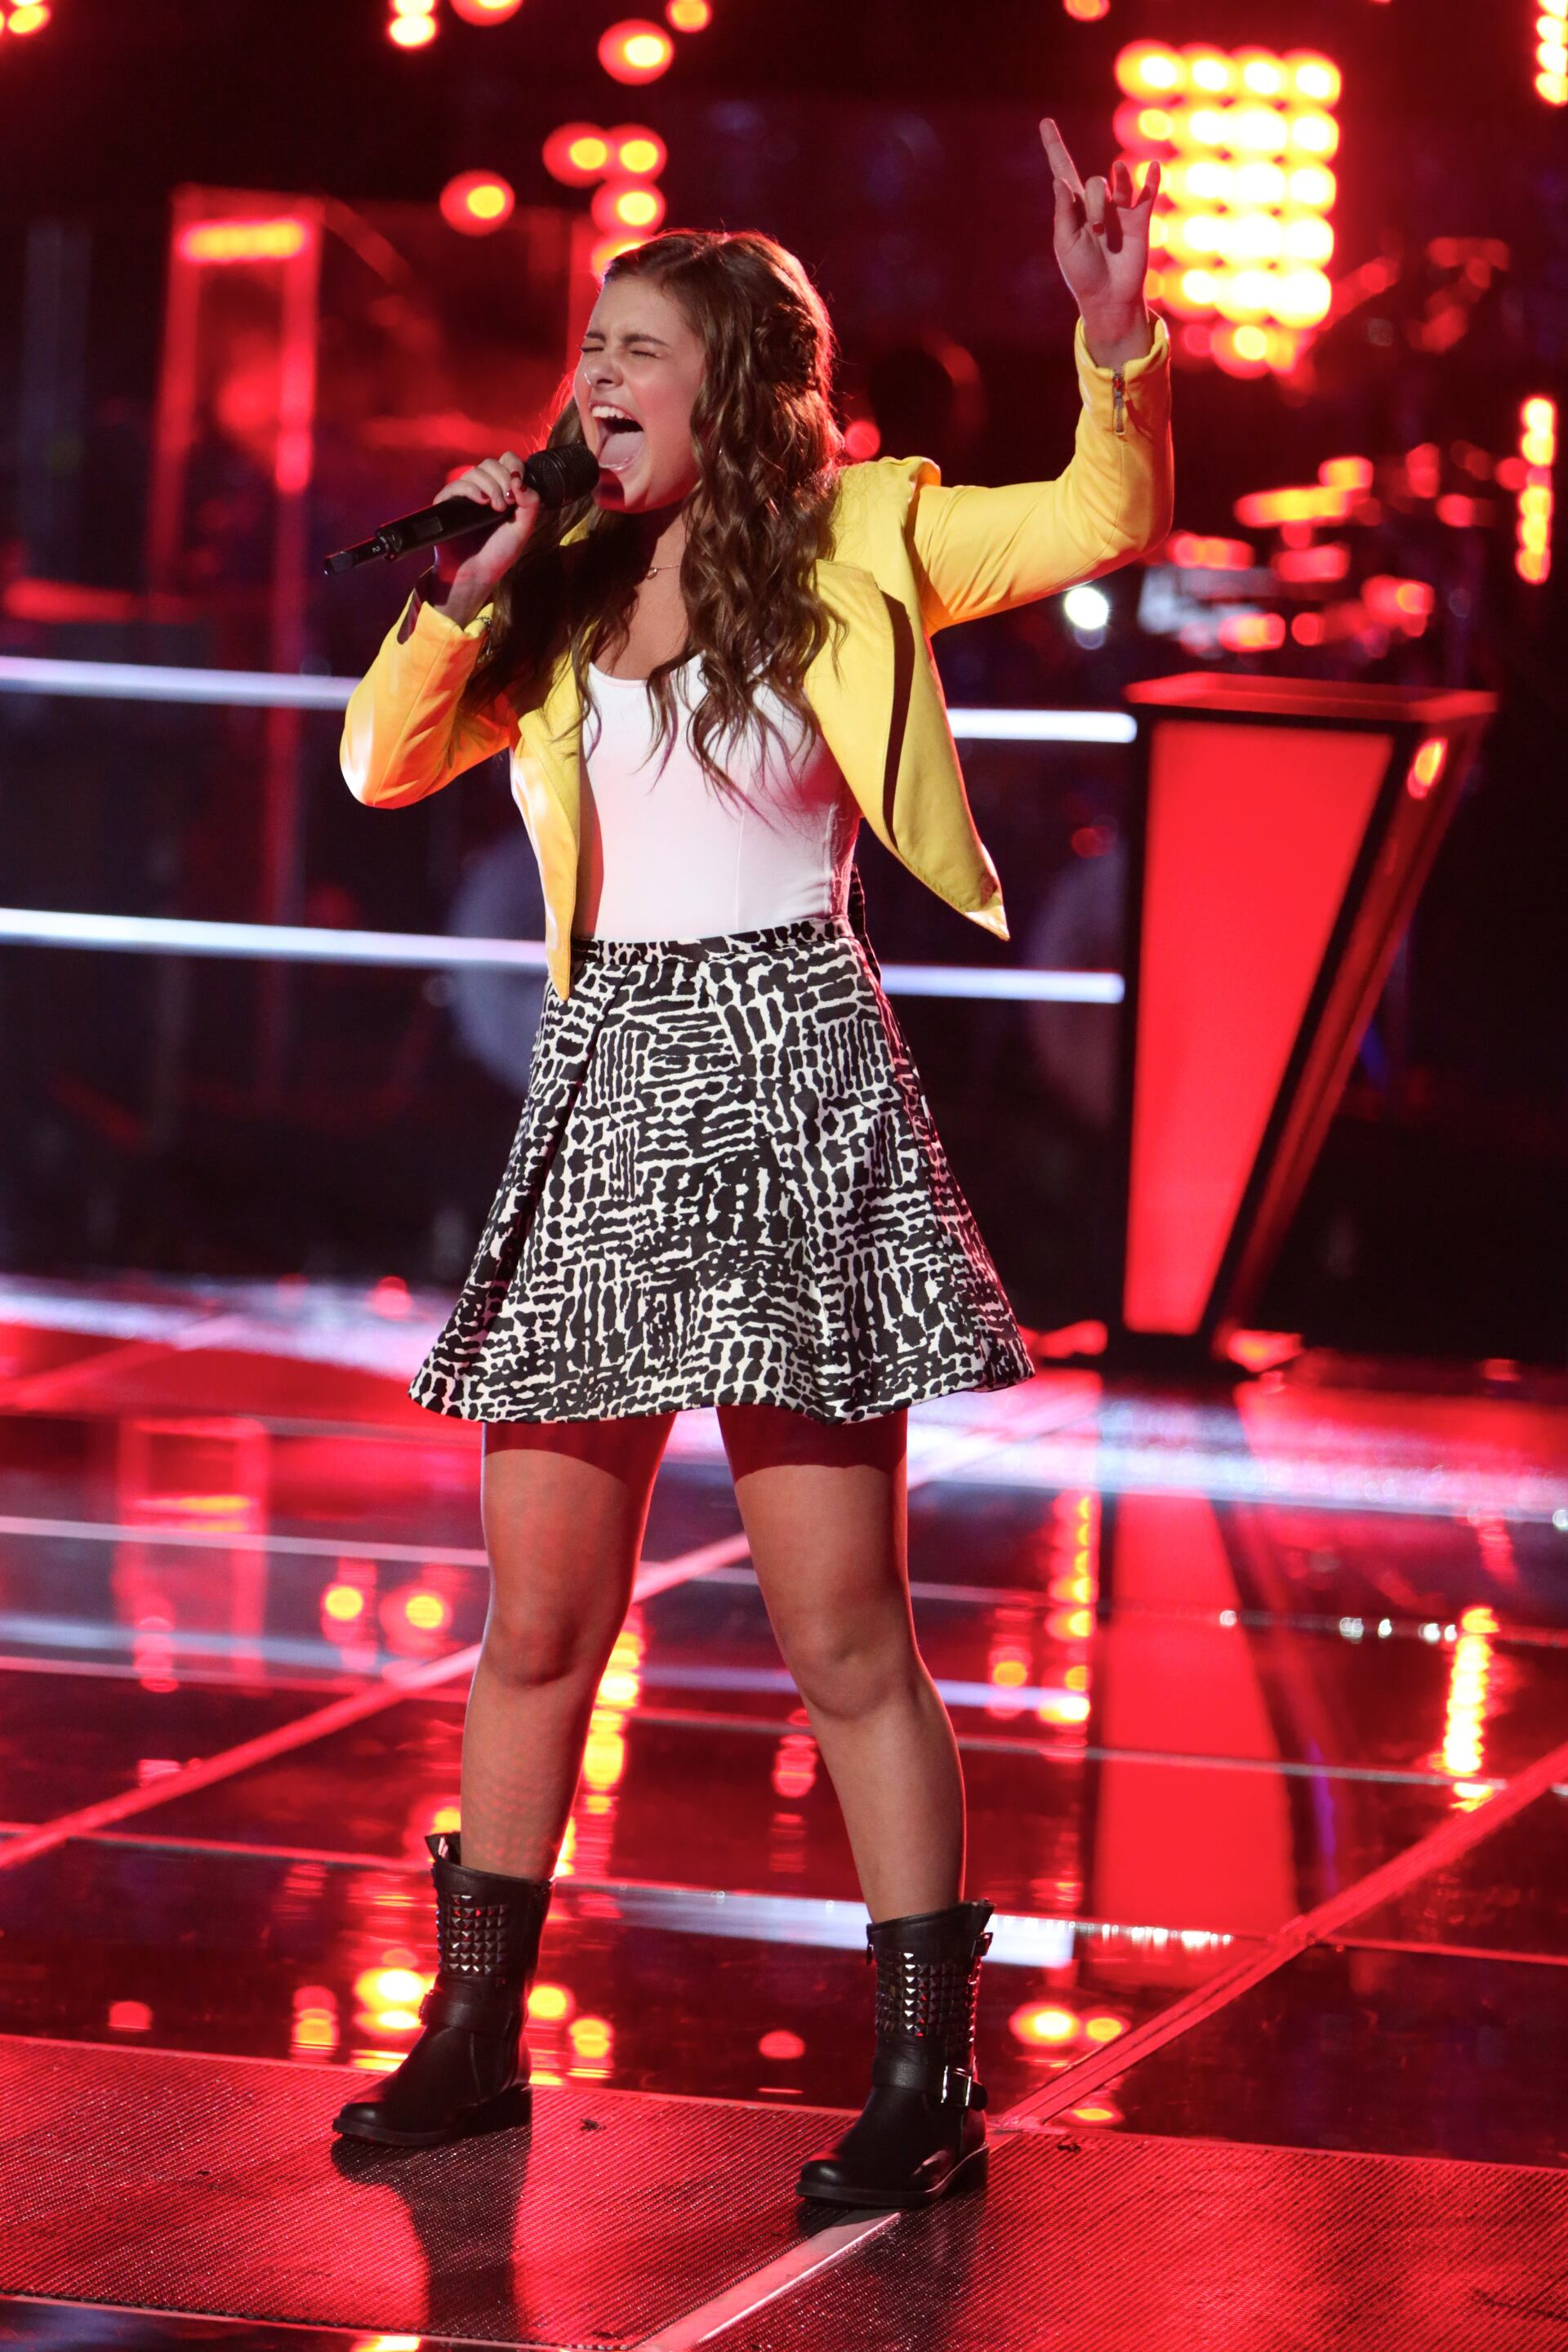 """Jacquie followed that up with a convincing knockout of Anthony Paul with a rousing take on Serena Ryder's """"Stompa."""""""